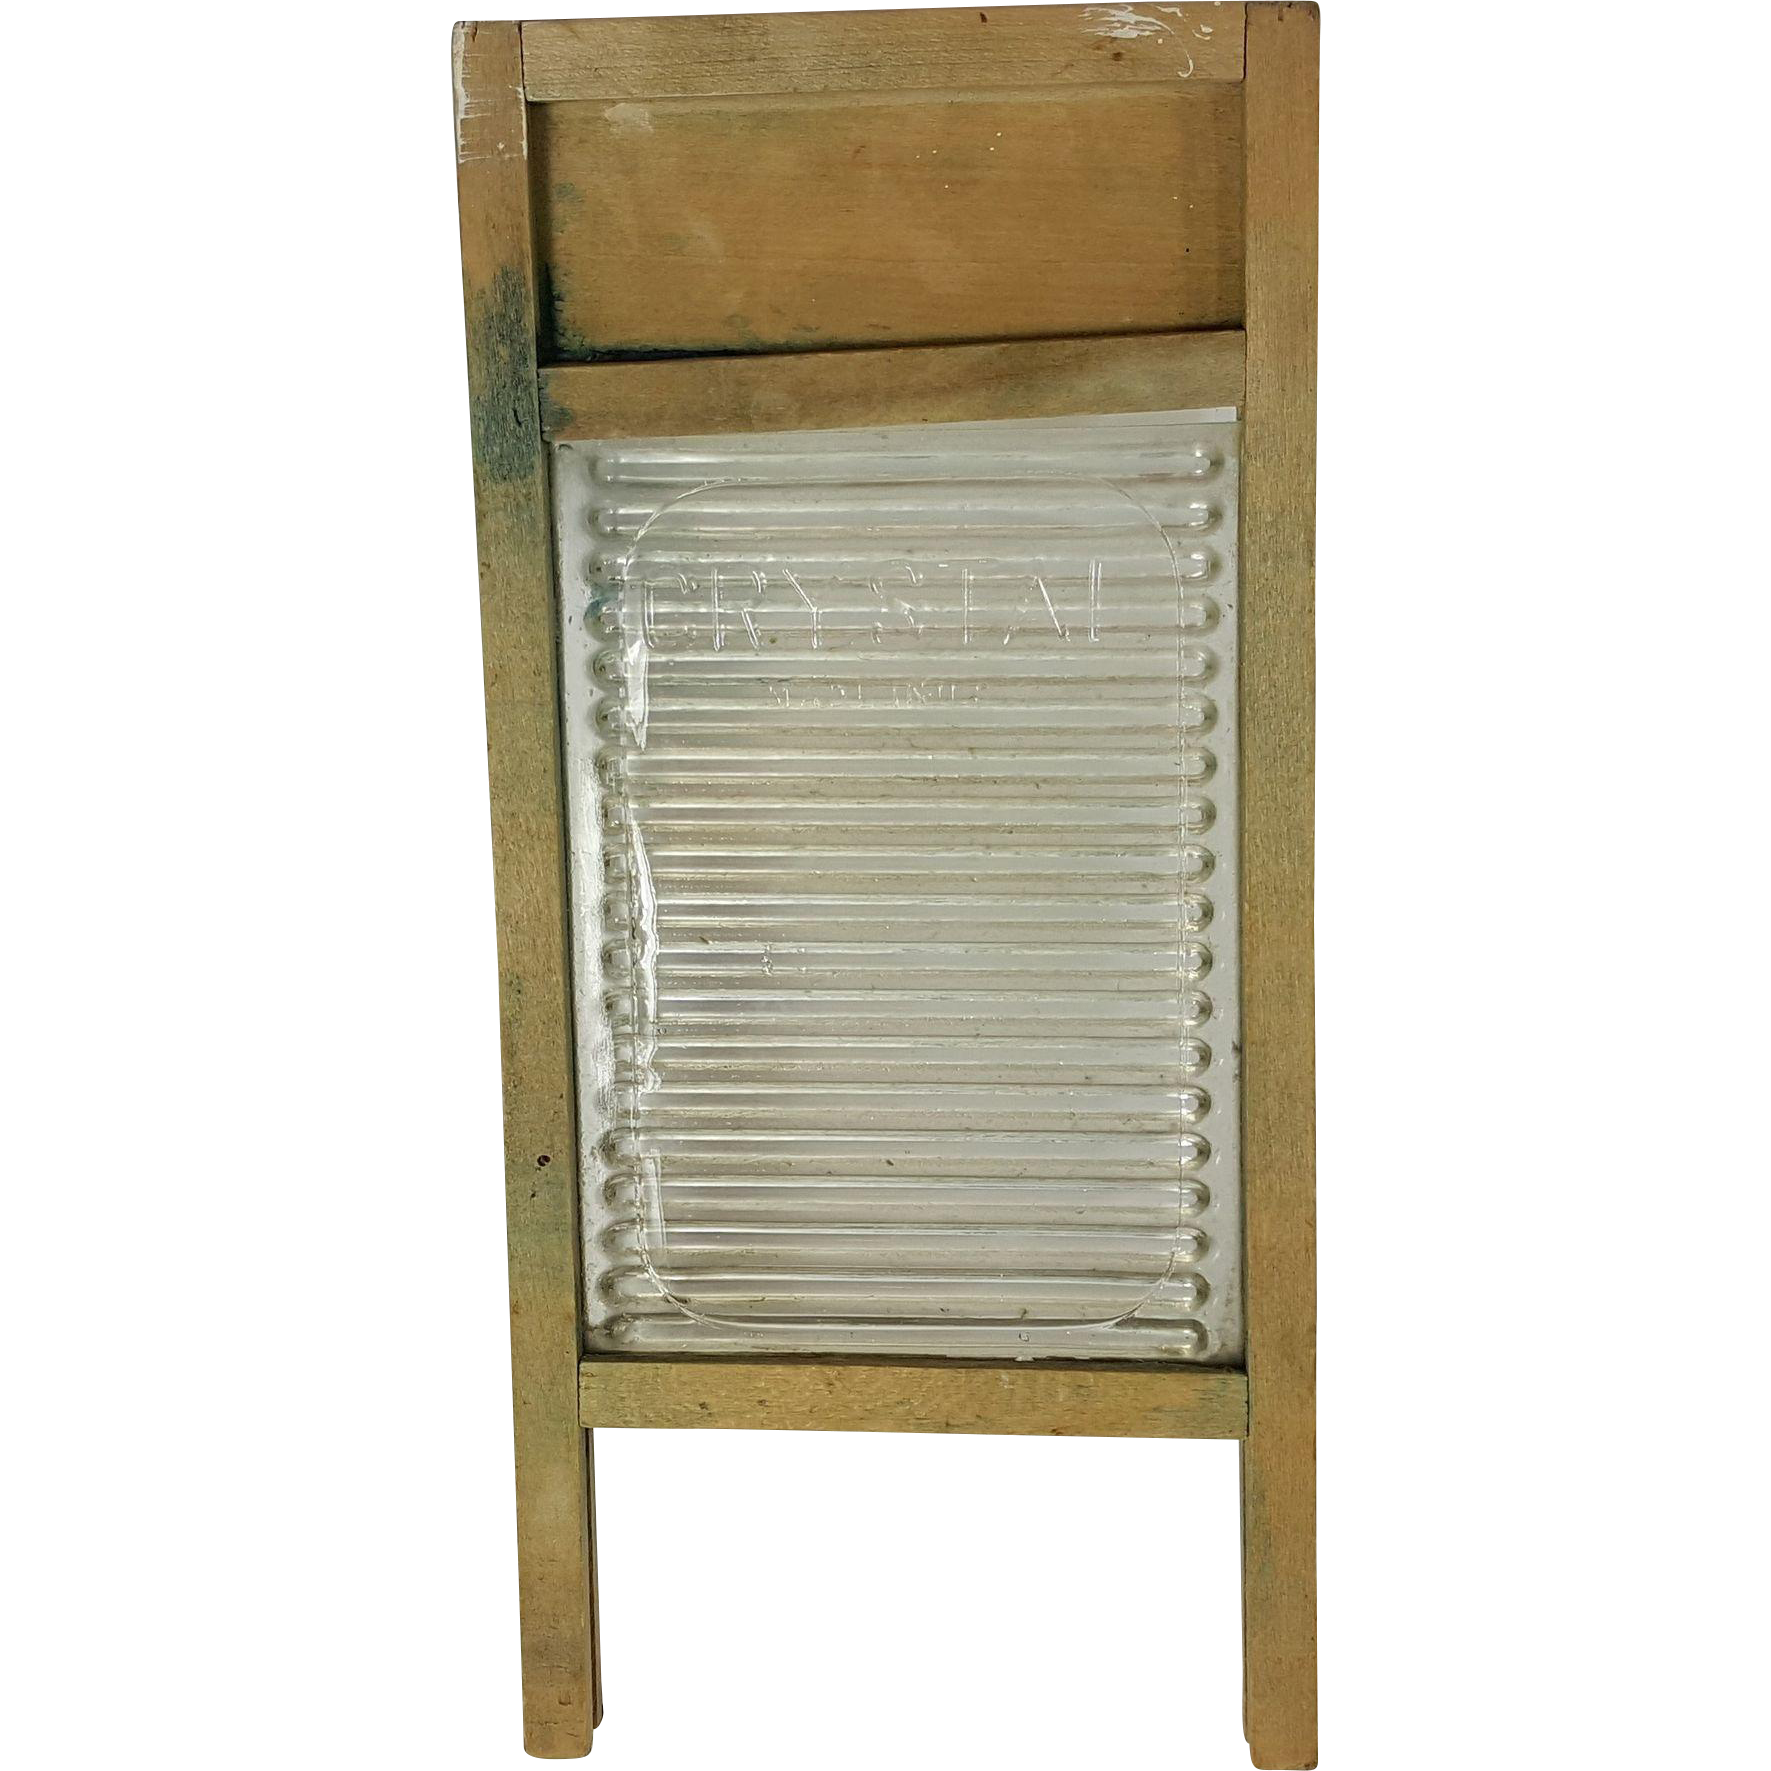 Vintage Crystal brand dolls washboard wood and ribbed glass country primitive laundry room childs or doll accessory  11 x 5 inch